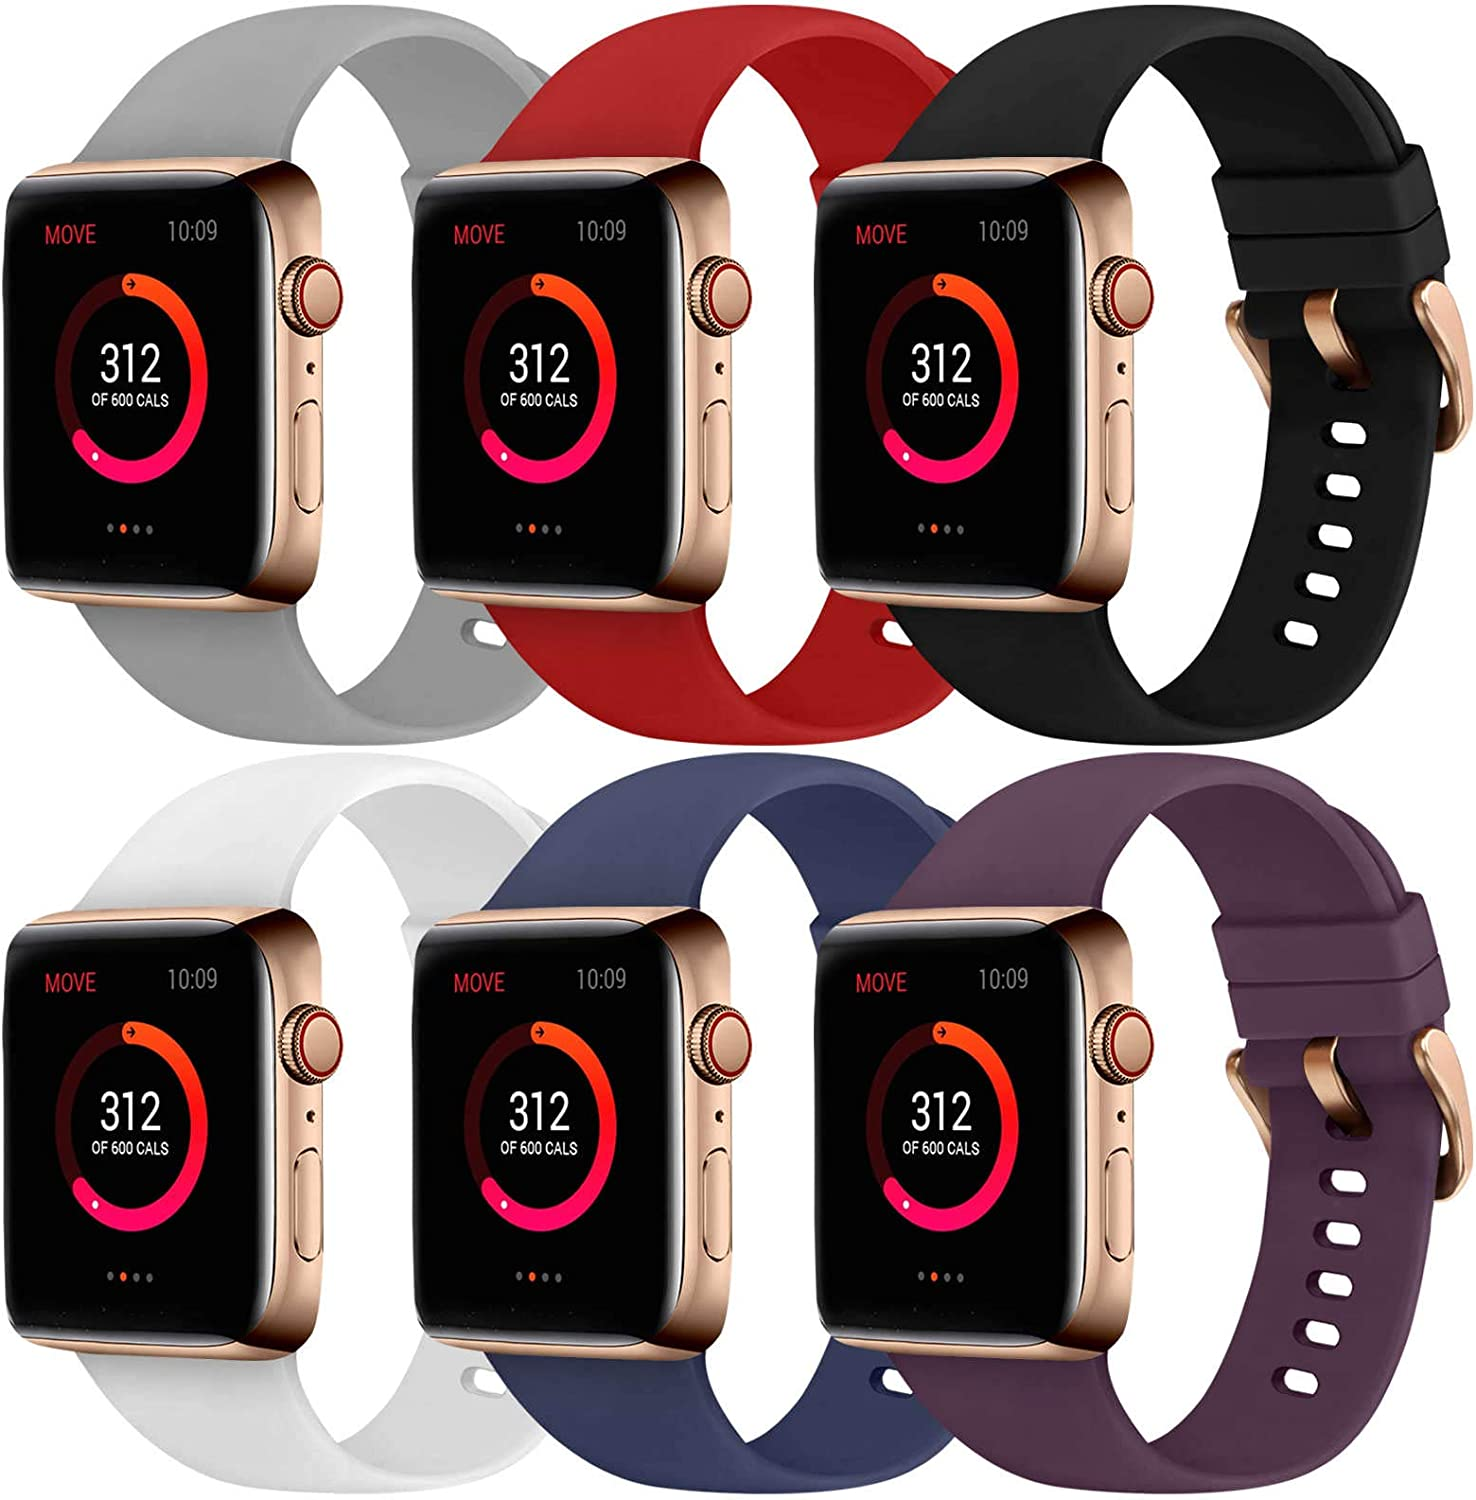 Abincee 6PCS Bands Compatible with Apple Watch 38mm 40mm 42mm 44mm with Rose Gold Buckle,replacement band for iWatch Series 6/5/4/3/2/1 (Black/Gray/White/Midnight Blue/Red/Purple, 38mm/40mm)